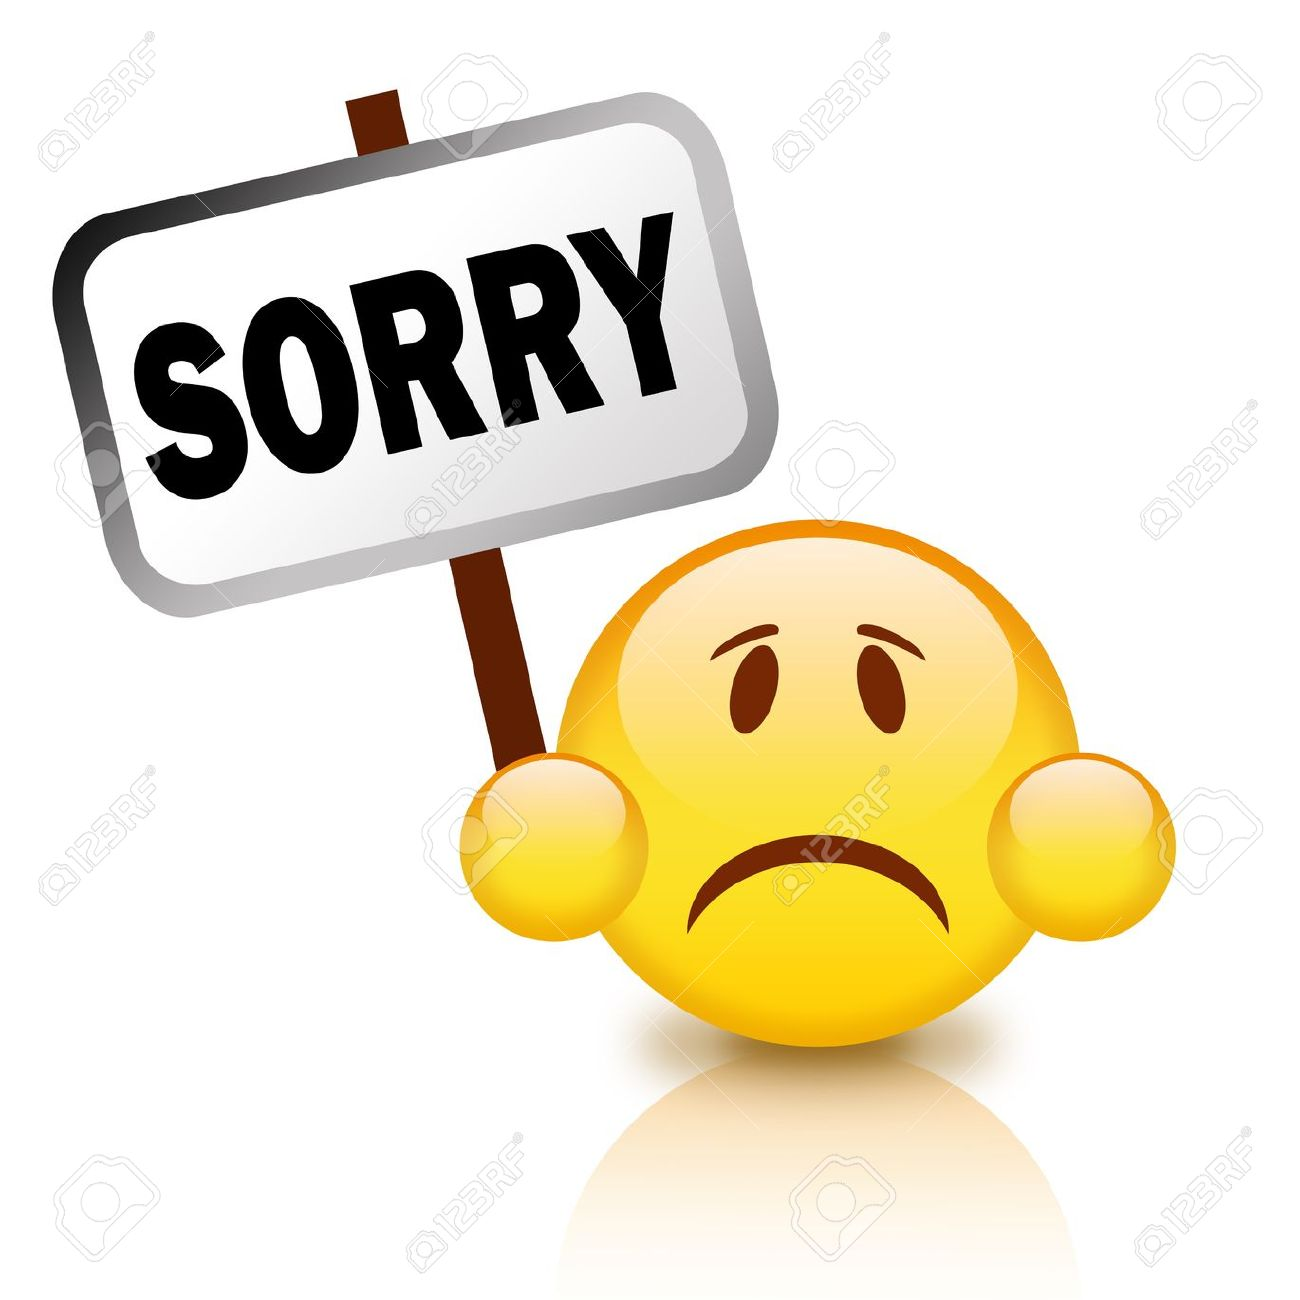 Apology clipart 1 » Clipart Station.